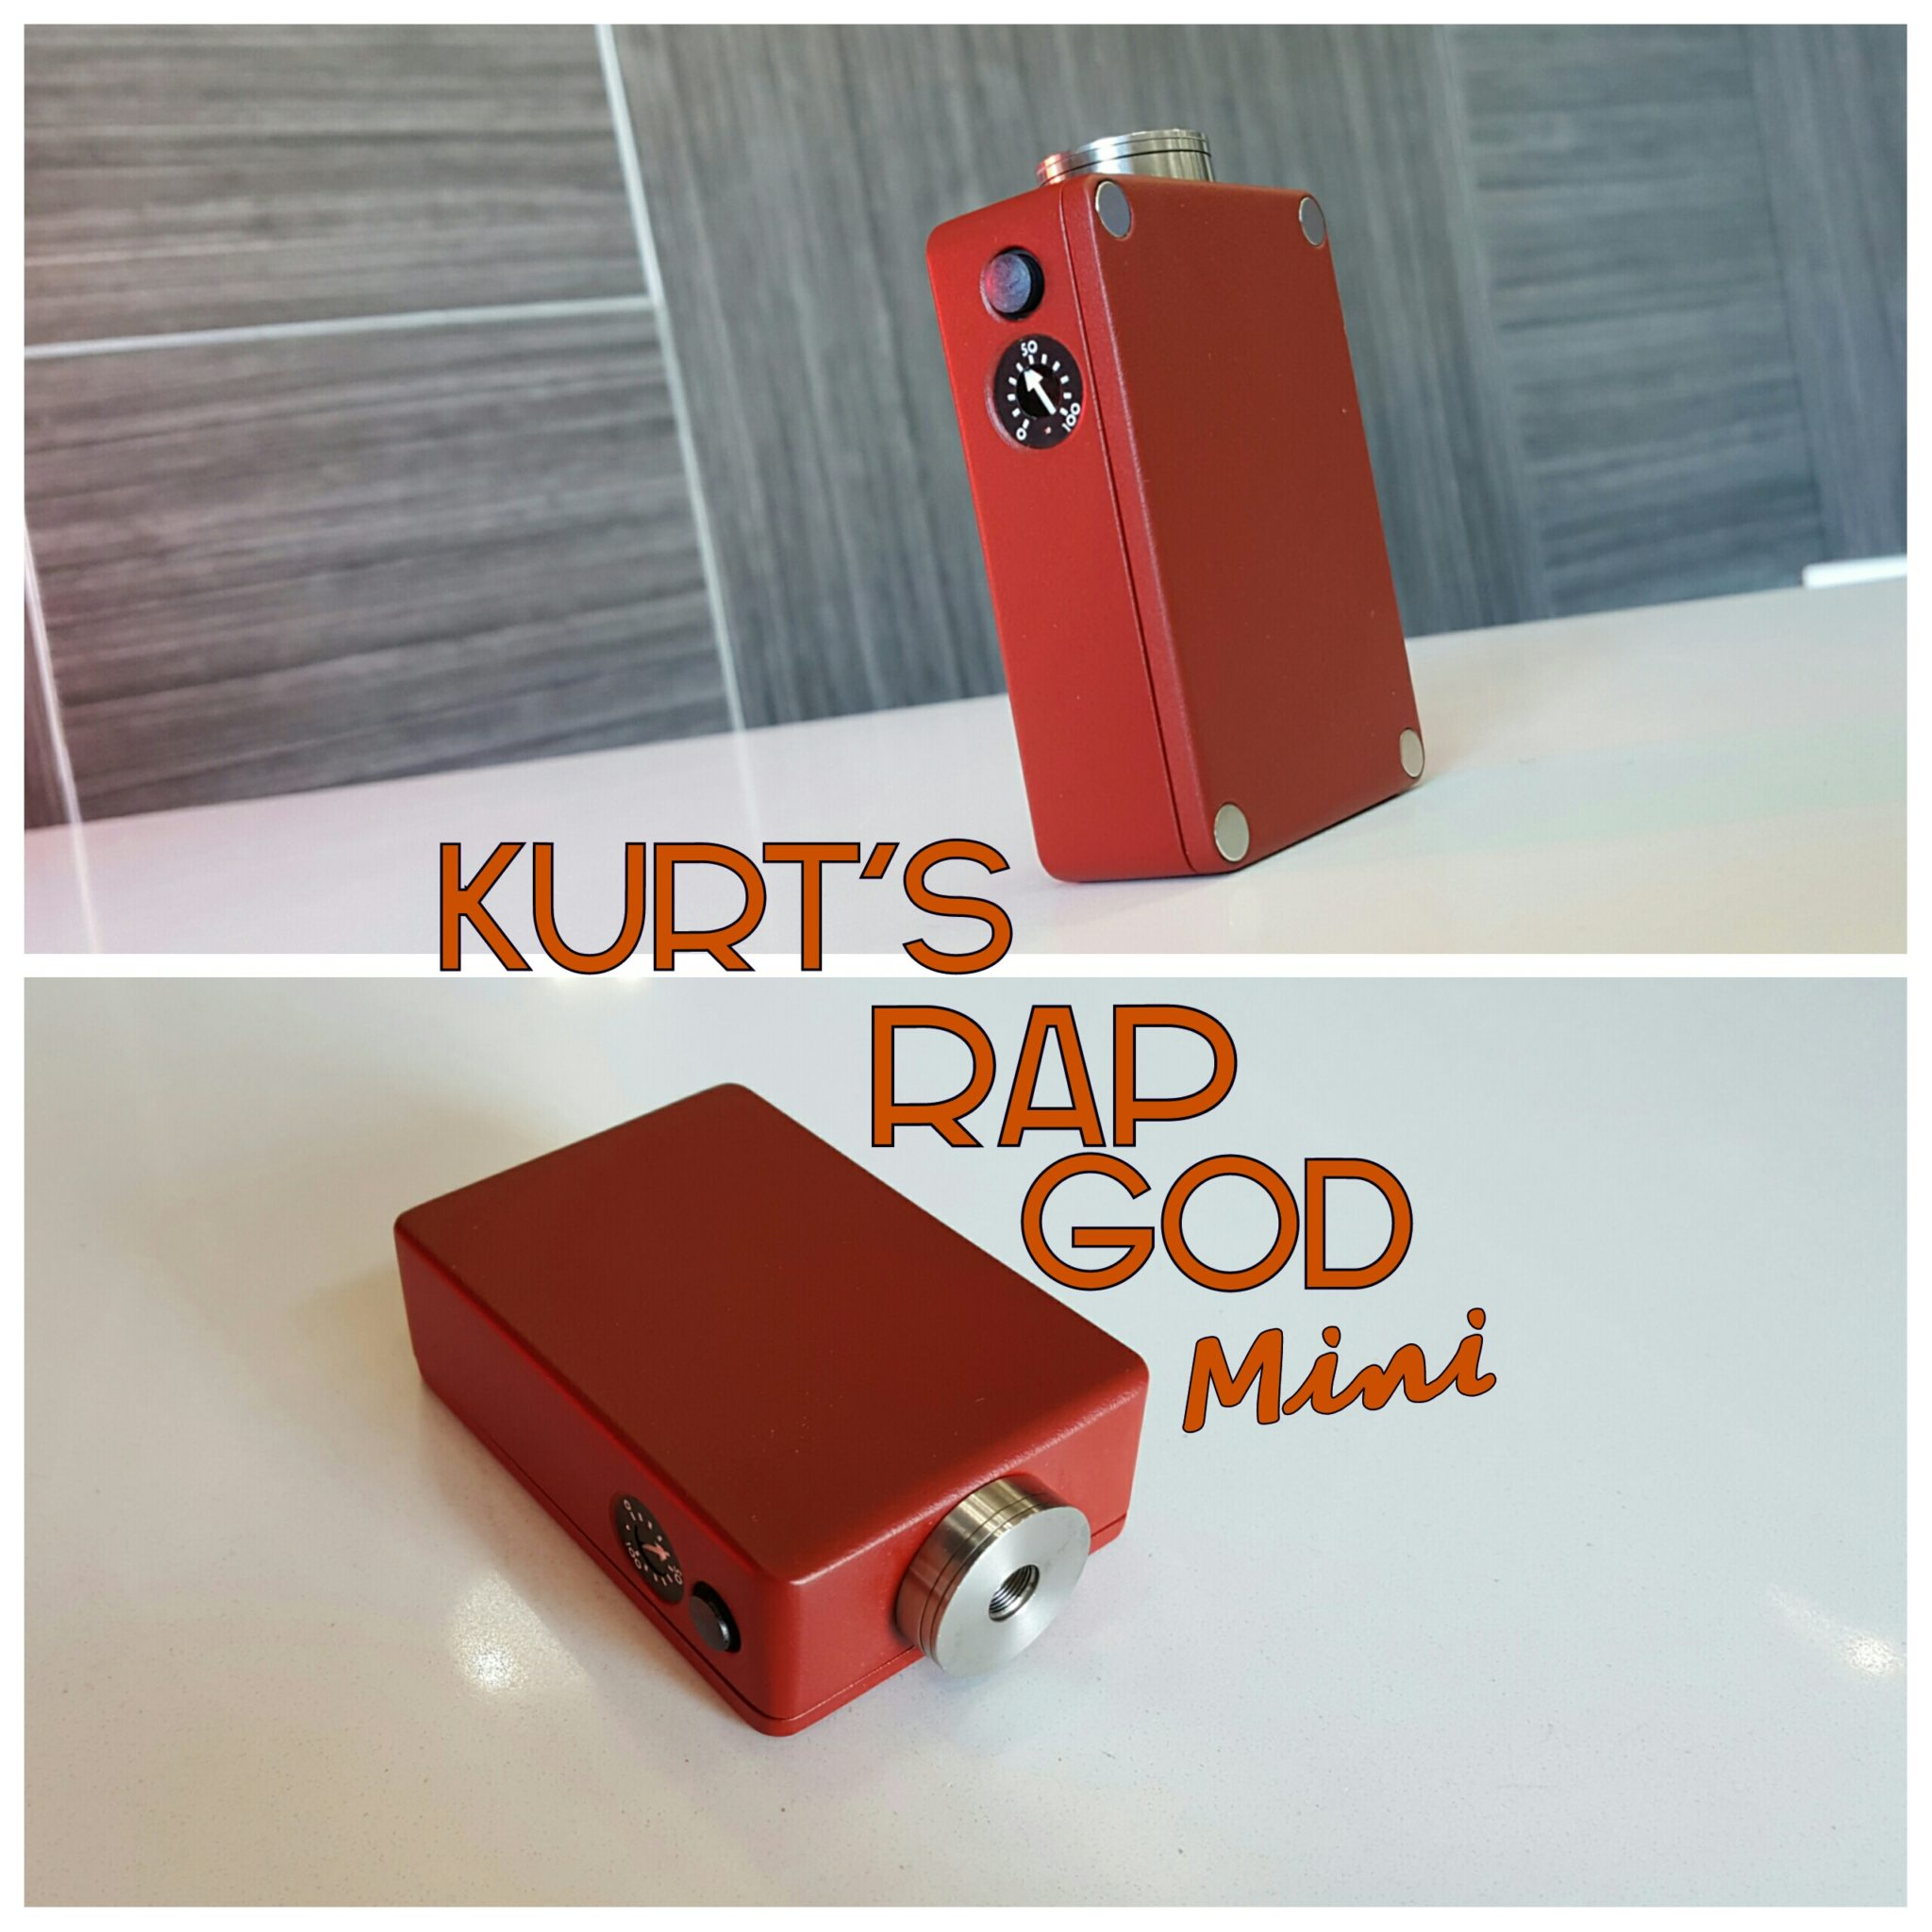 Kurt's RapGod Mini, Red Oxide